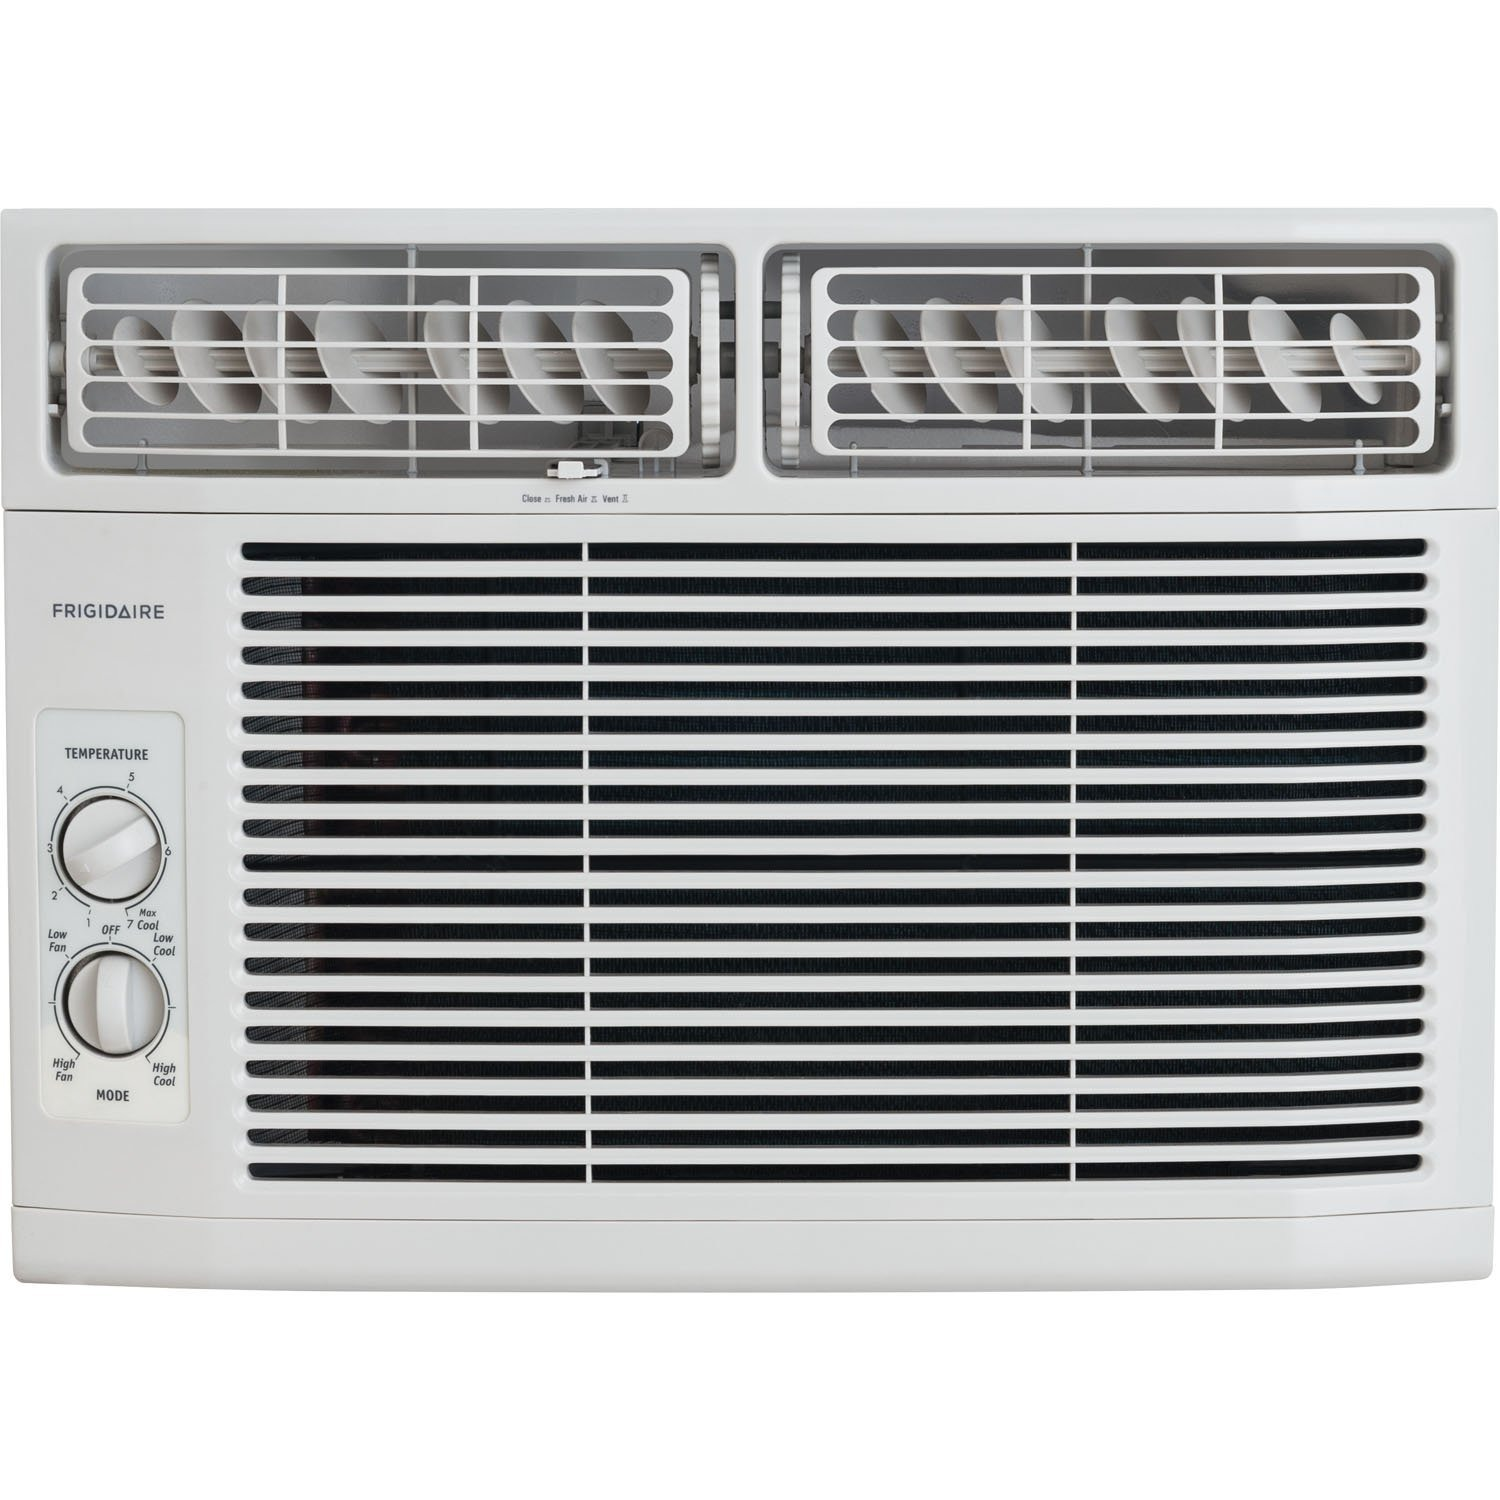 Product Review Frigidaire FFRA1222R1 12 000 BTU Window Air